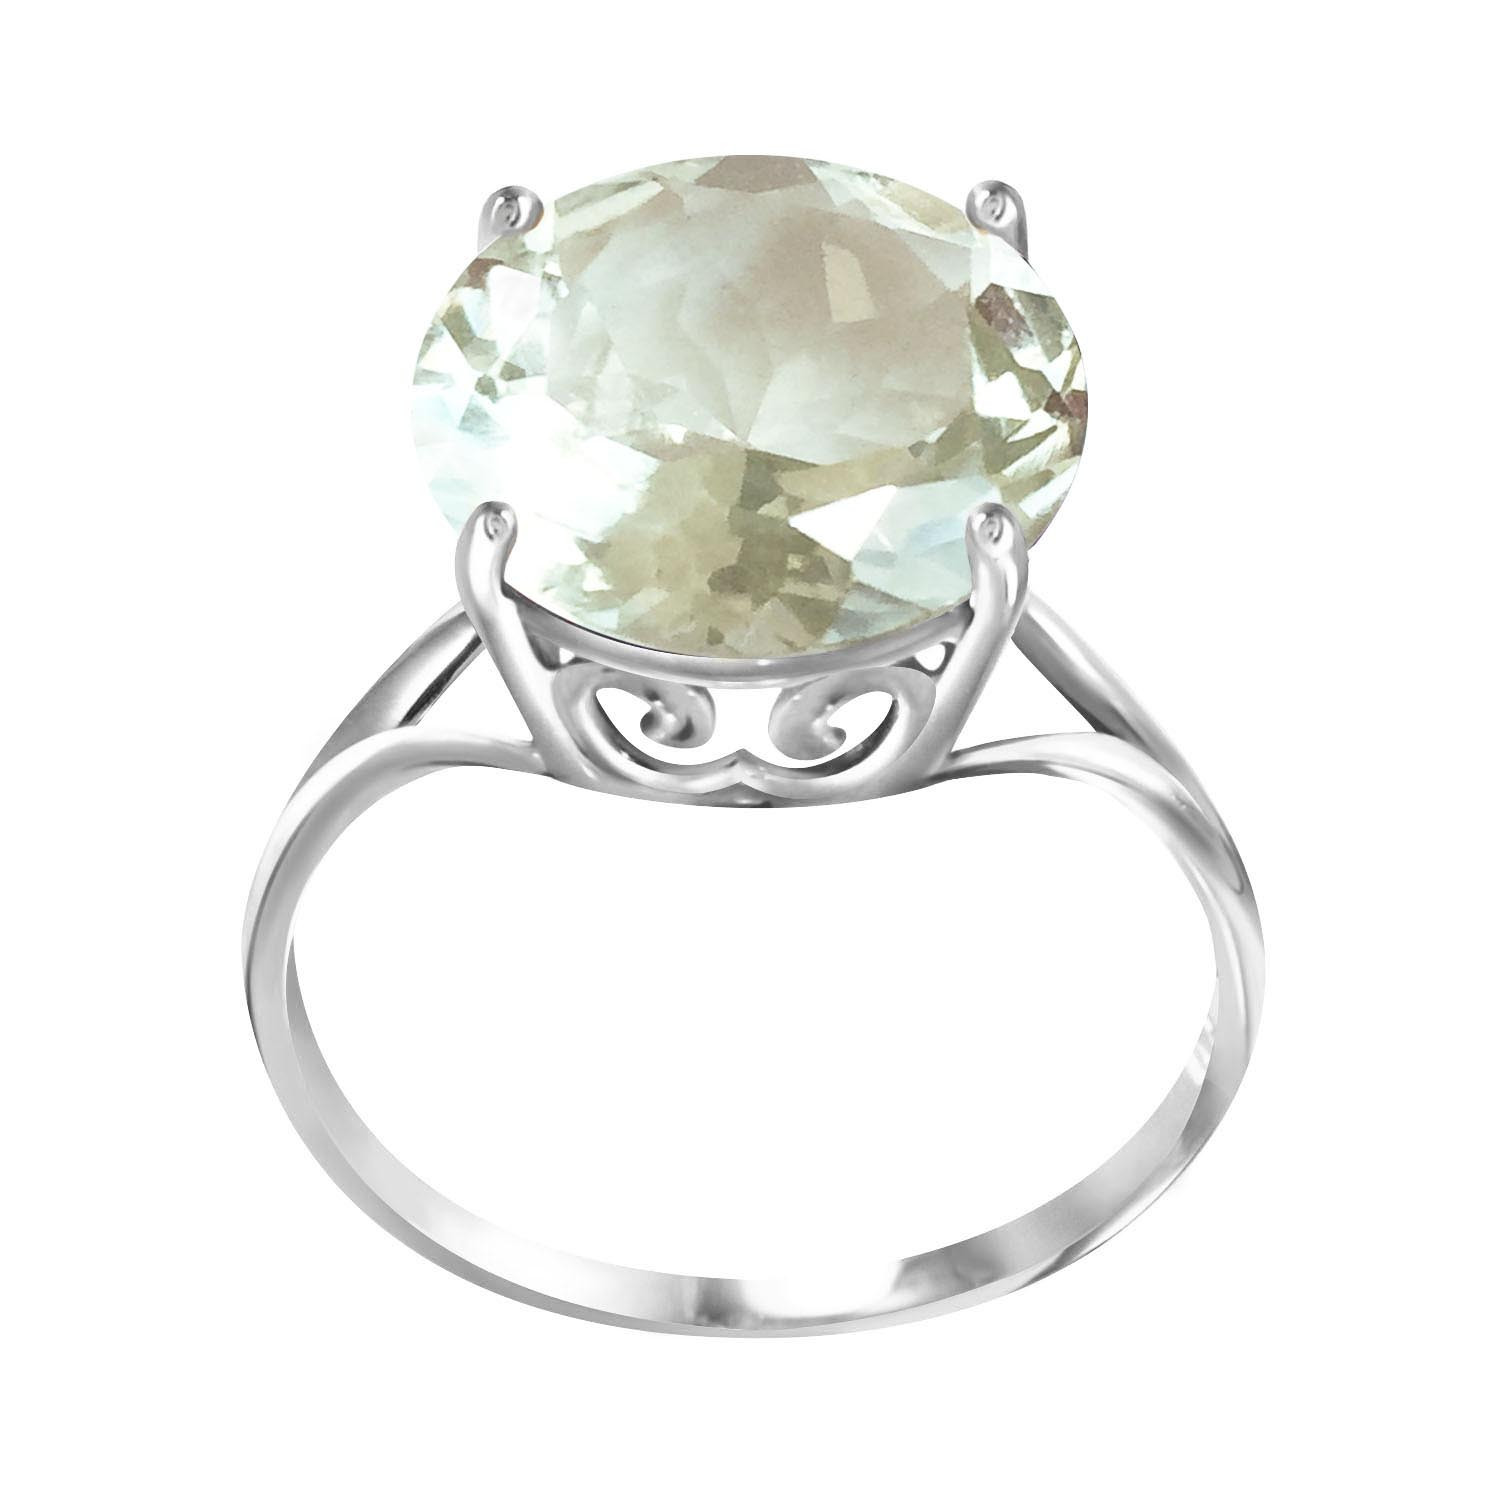 Round Cut Green Amethyst Ring 5.5 ct in 9ct White Gold